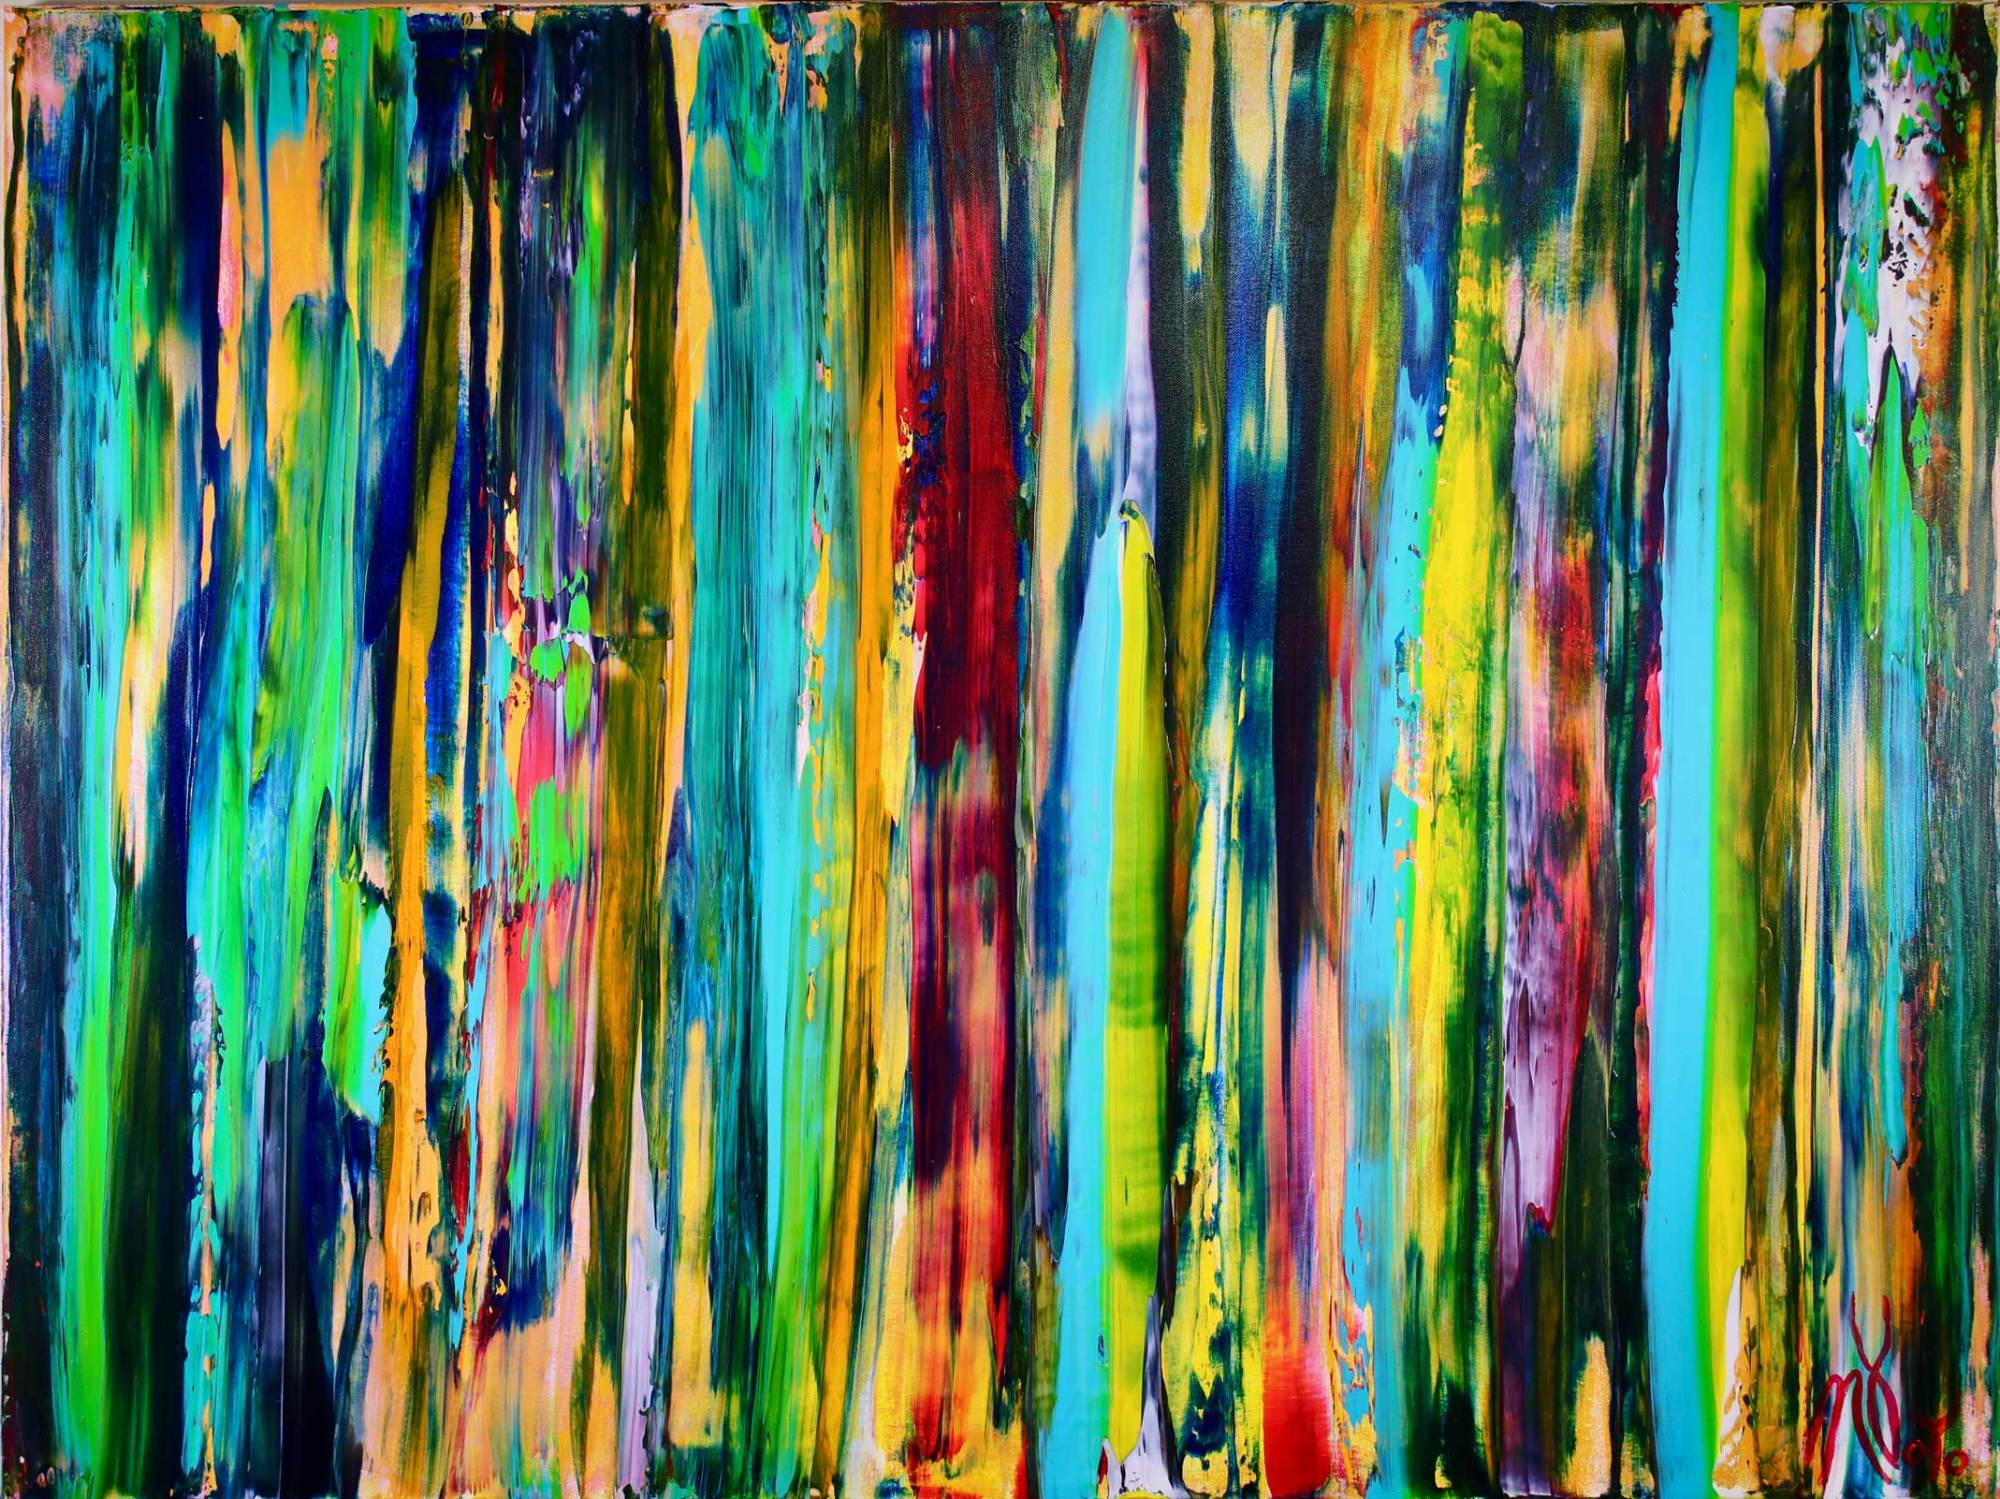 SOLD - Deconstructed Forest 2 (2018) Abstract Acrylic painting by Nestor Toro